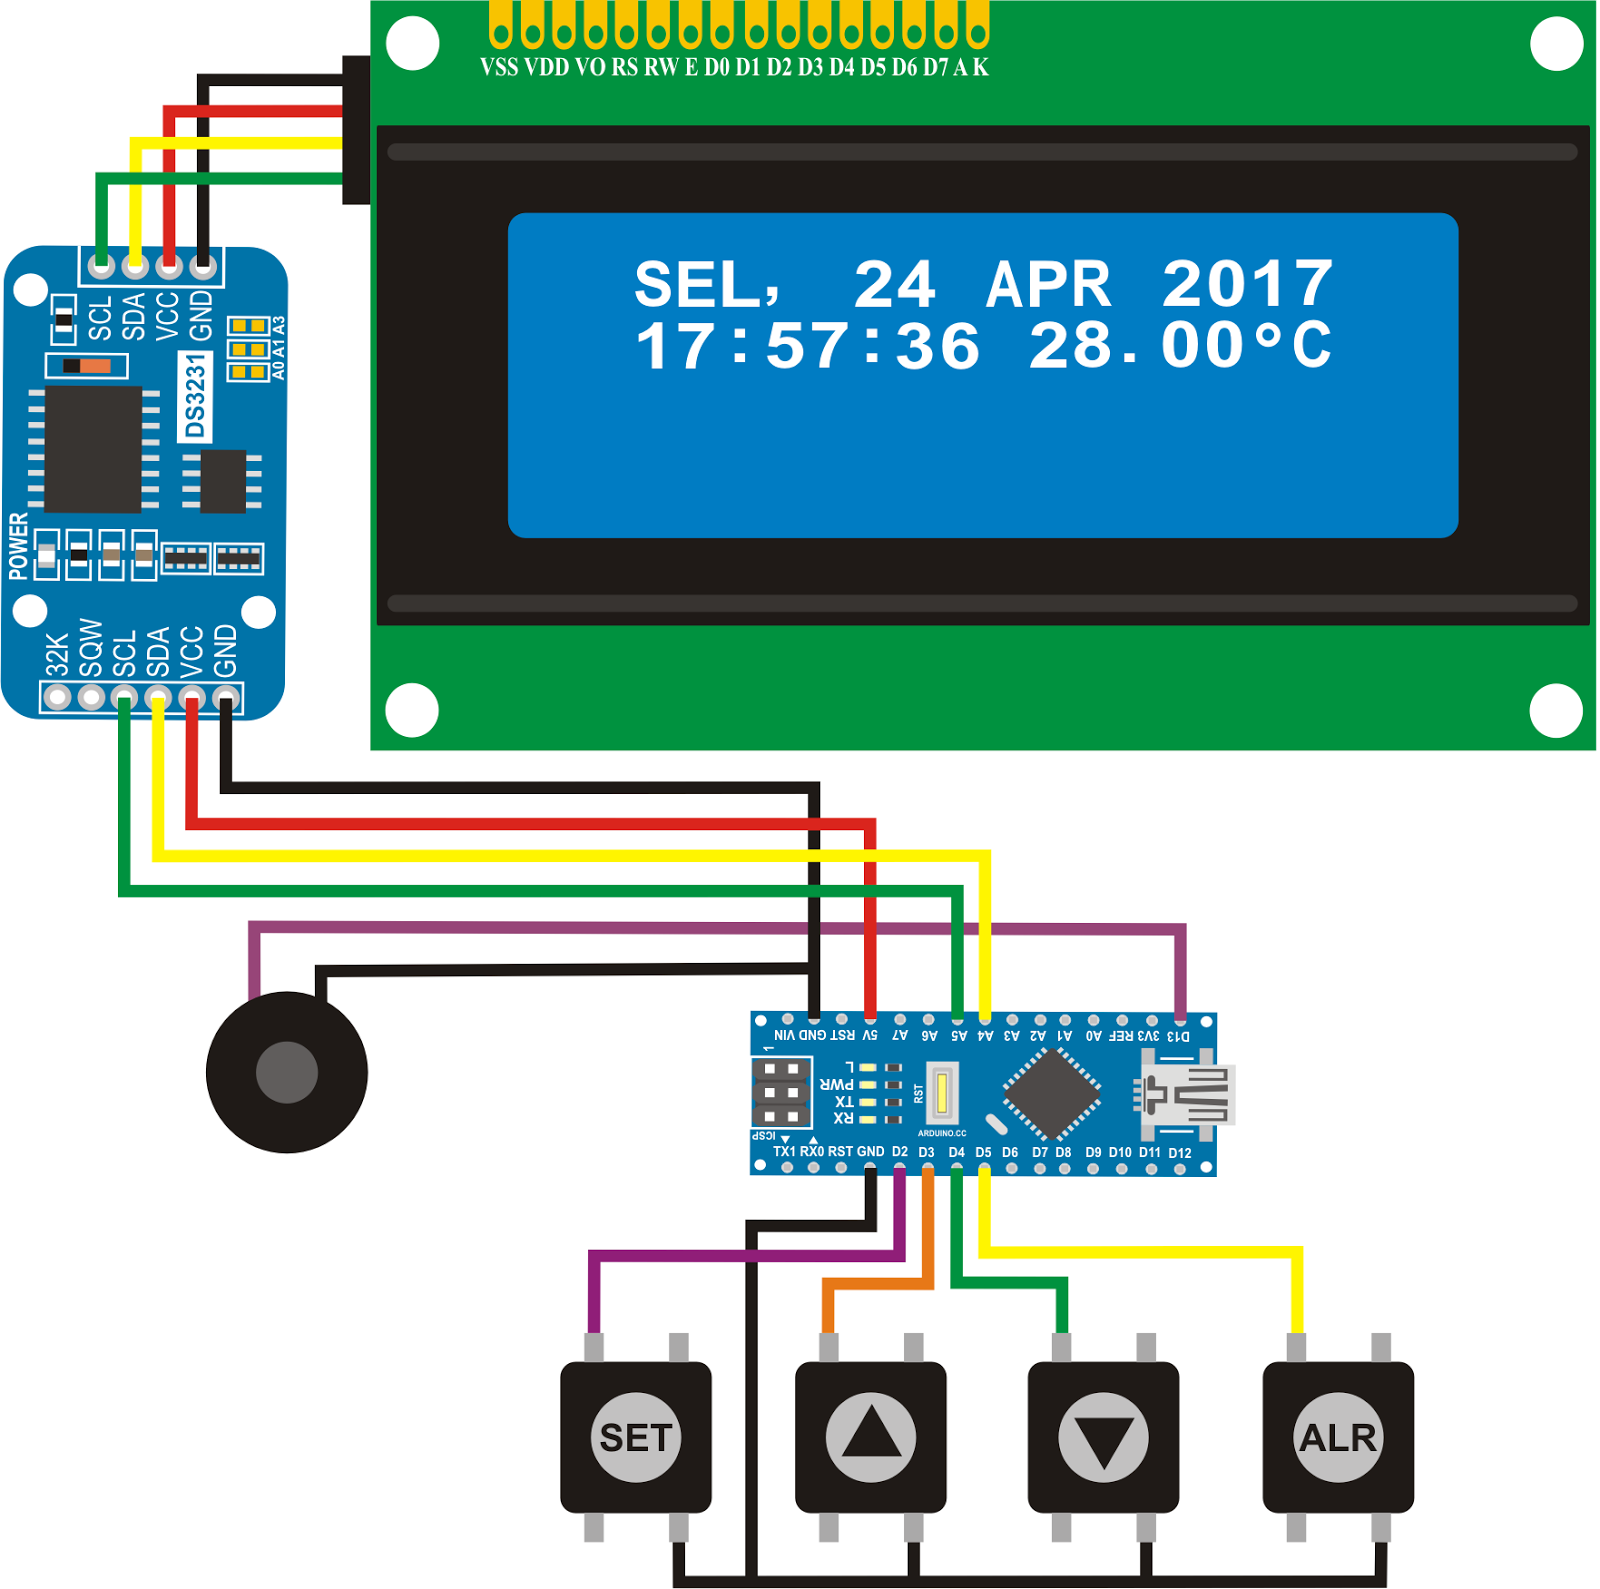 michaelsarduino: DS3231 Real Time Clock